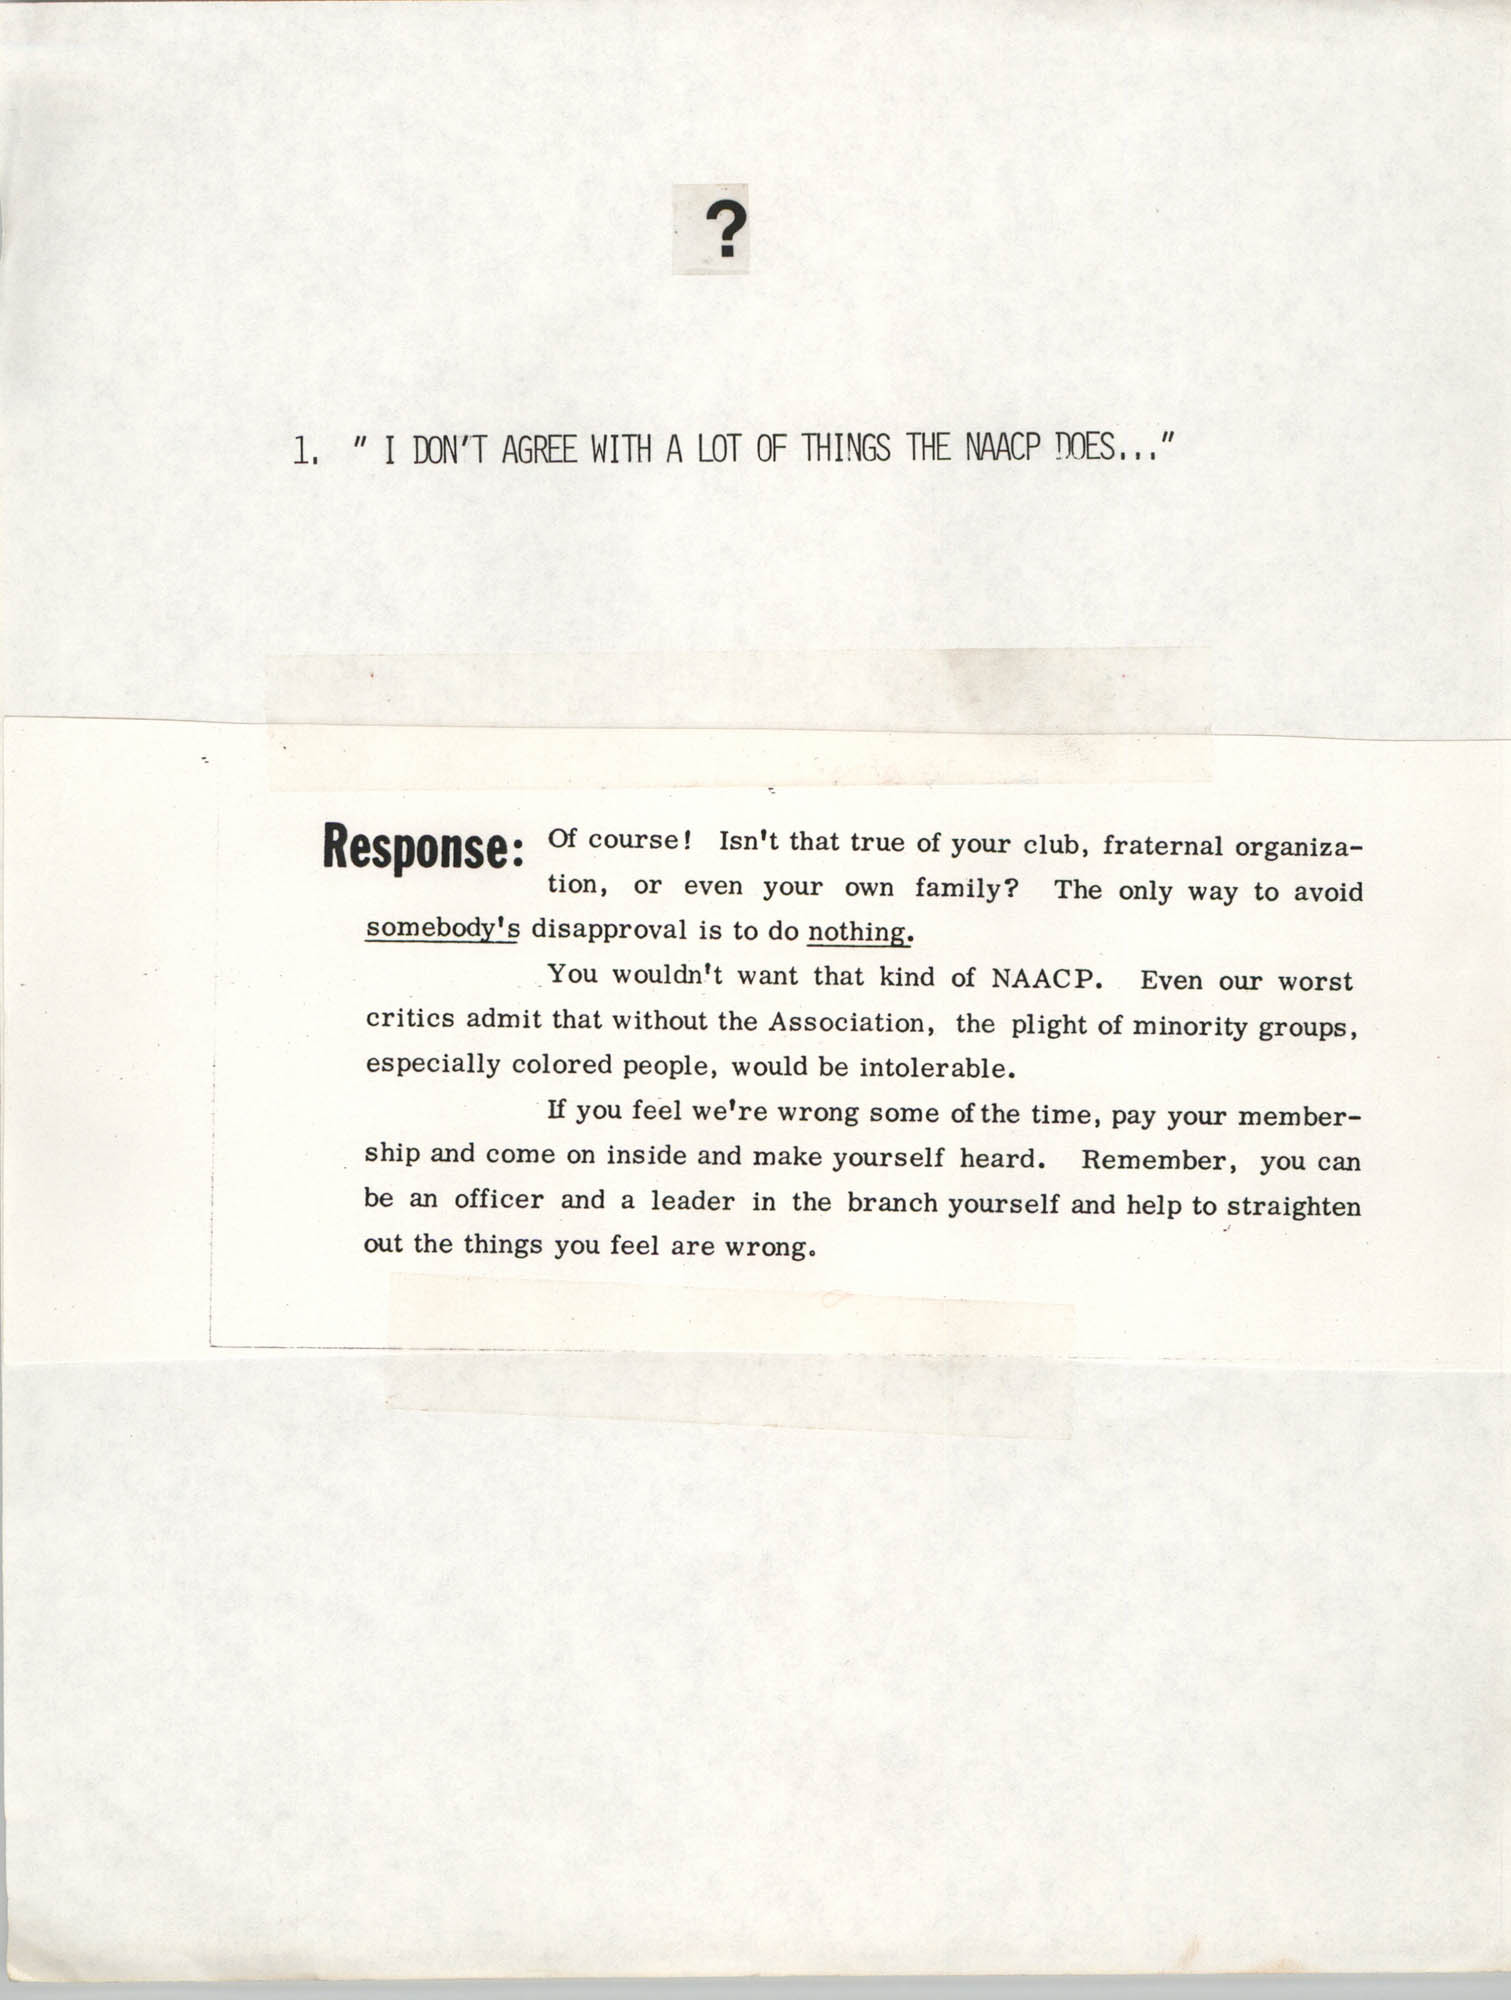 Tips for Soliciting NAACP Members, Pamphlet, Charleston Branch of the NAACP, 1987, Page 1